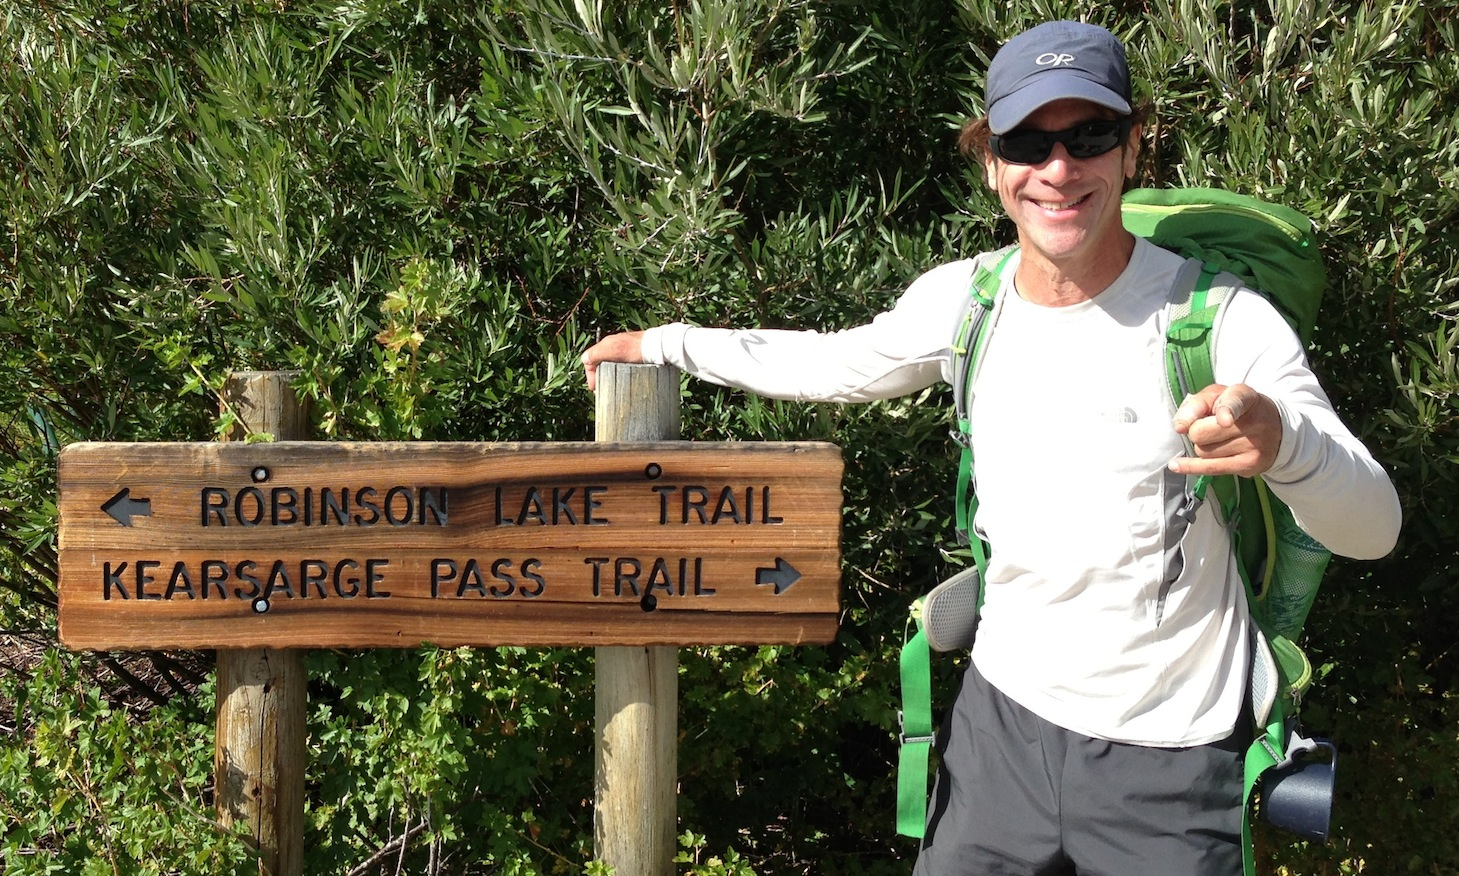 JMT hiker Jesse from Petaluma has a song in his heart and a light pack on his back as he gets ready to fly up and over Kearsarge Pass on August 19.